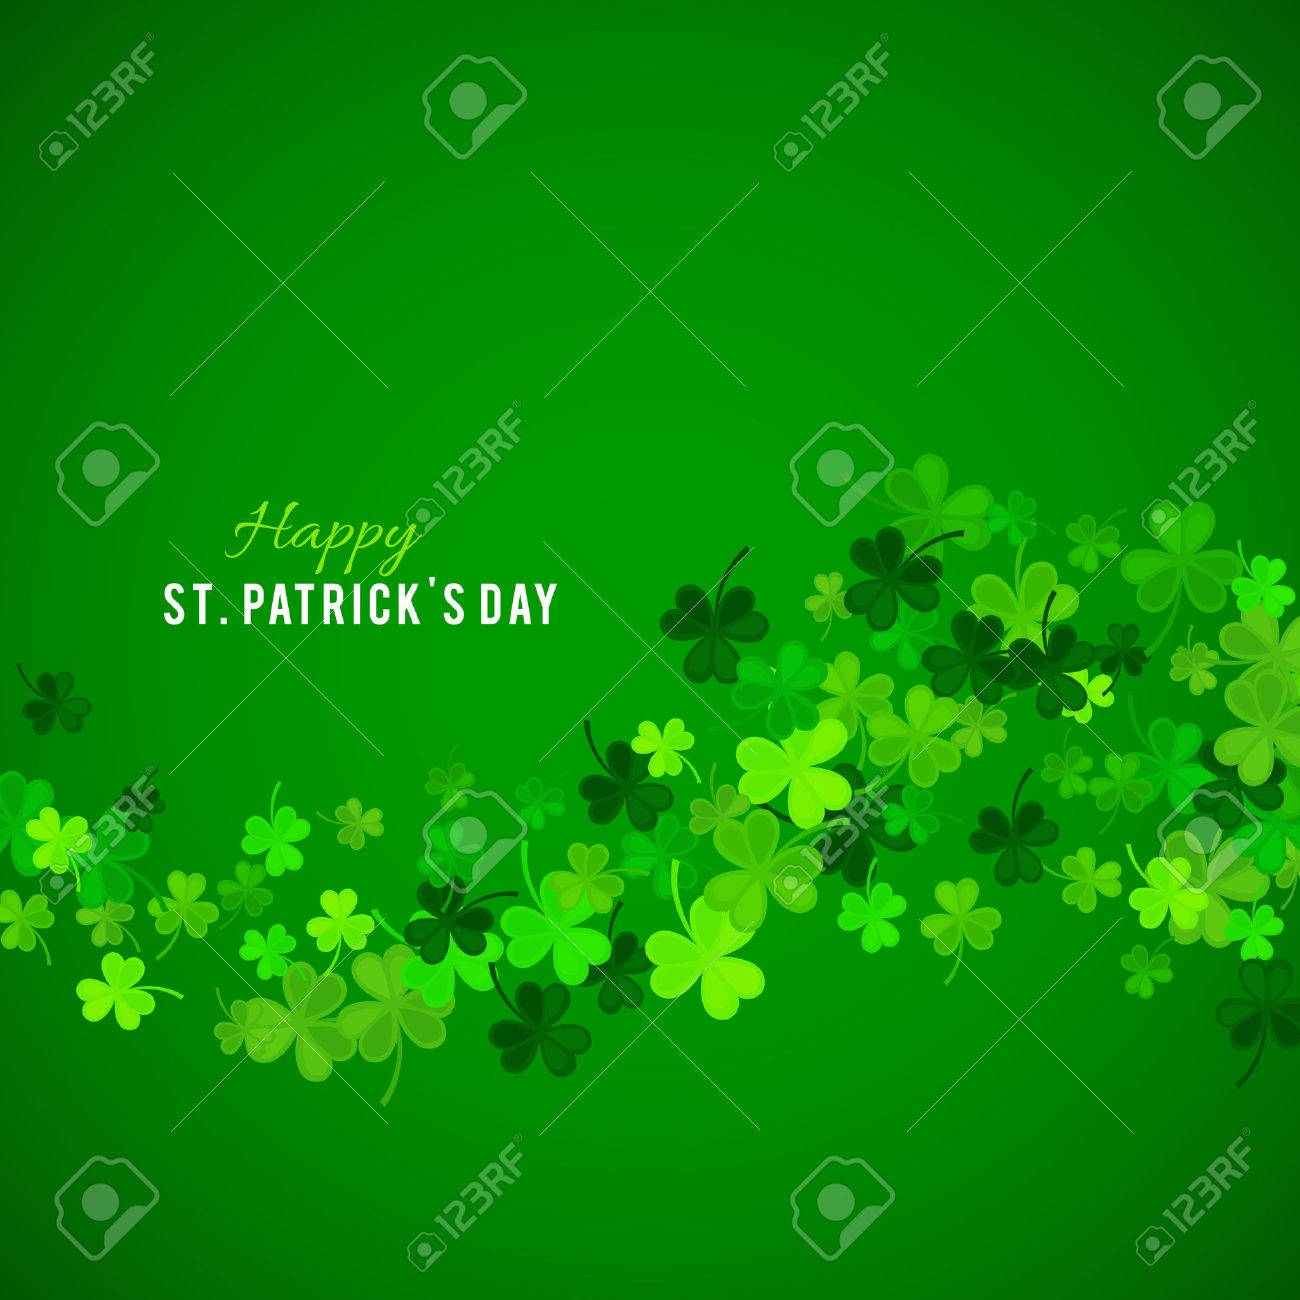 St Patrick's Day background. Vector illustration for lucky spring design with shamrock. Green clover wave border isolated on green background. Ireland symbol pattern. Irish header for web site. - 53123232